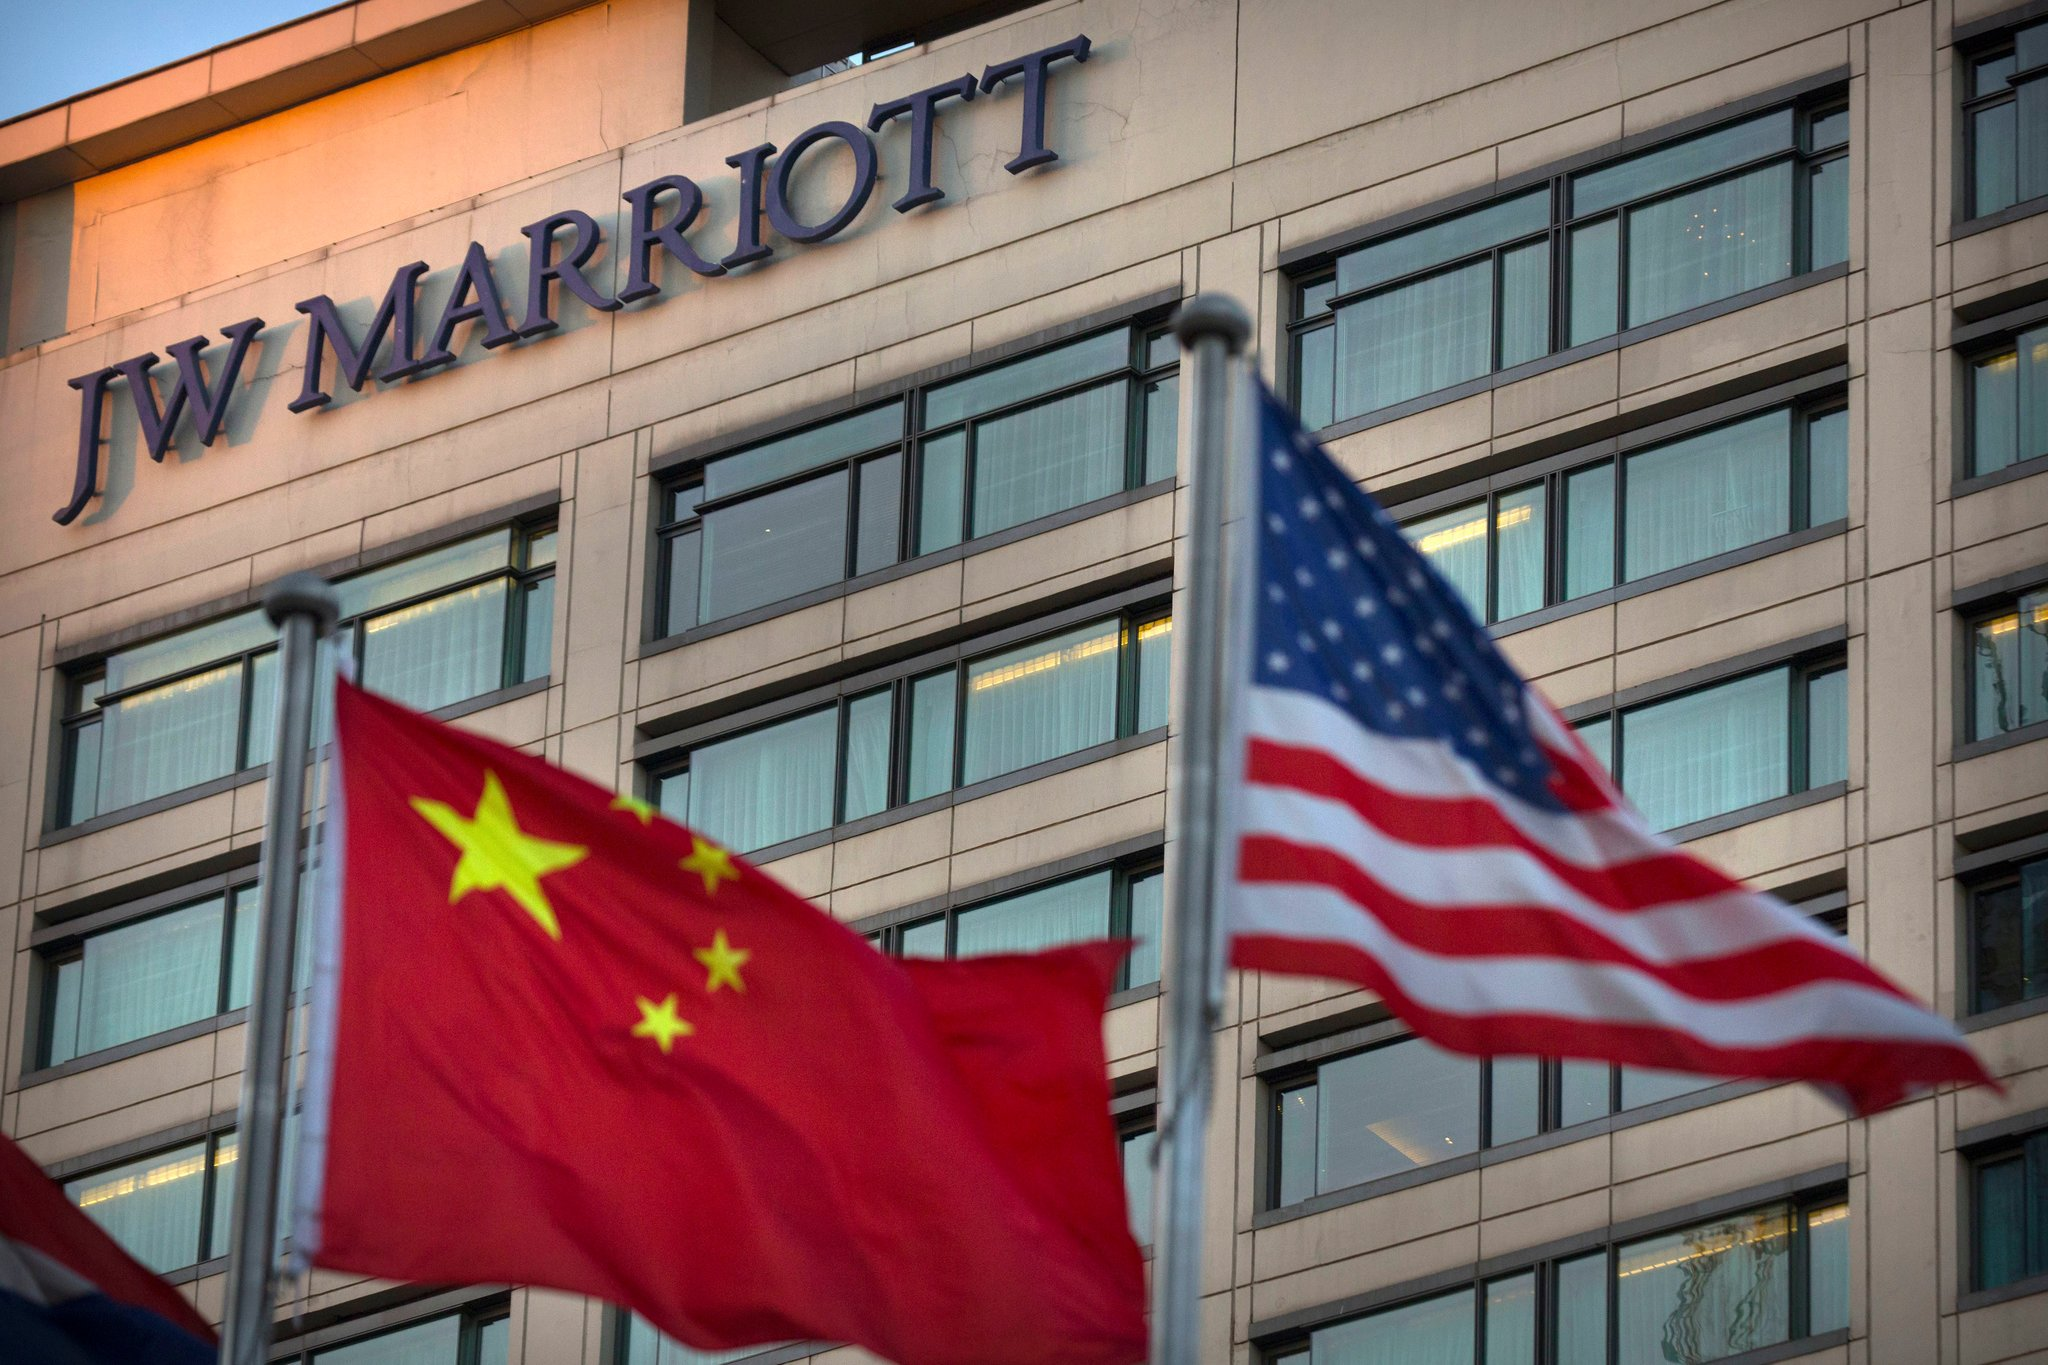 A JW Marriott hotel in Beijing. The Marriott hotel chain is under investigation in China after it listed Tibet and Taiwan as countries. (Photo courtesy: Mark Schiefelbein/Associate Press)